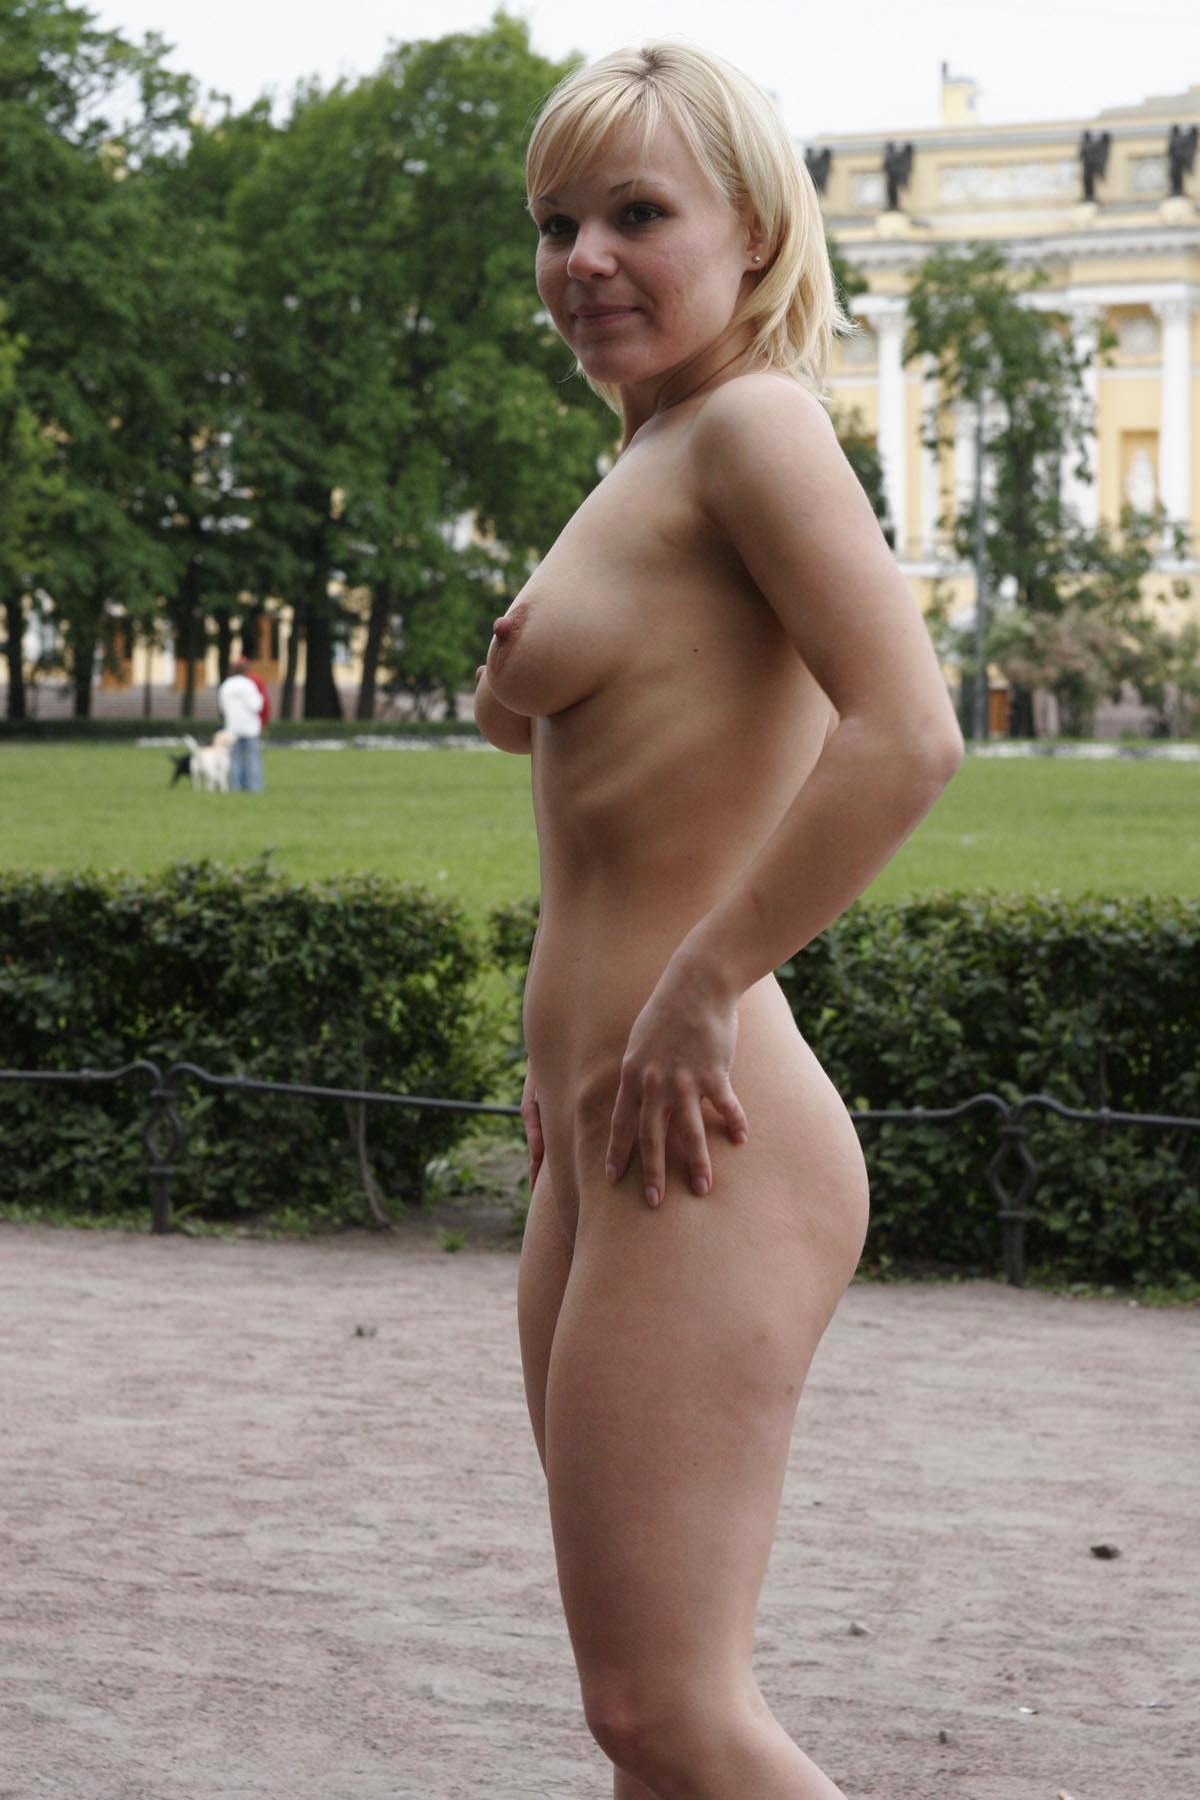 Girls with short blonde hair nude are not